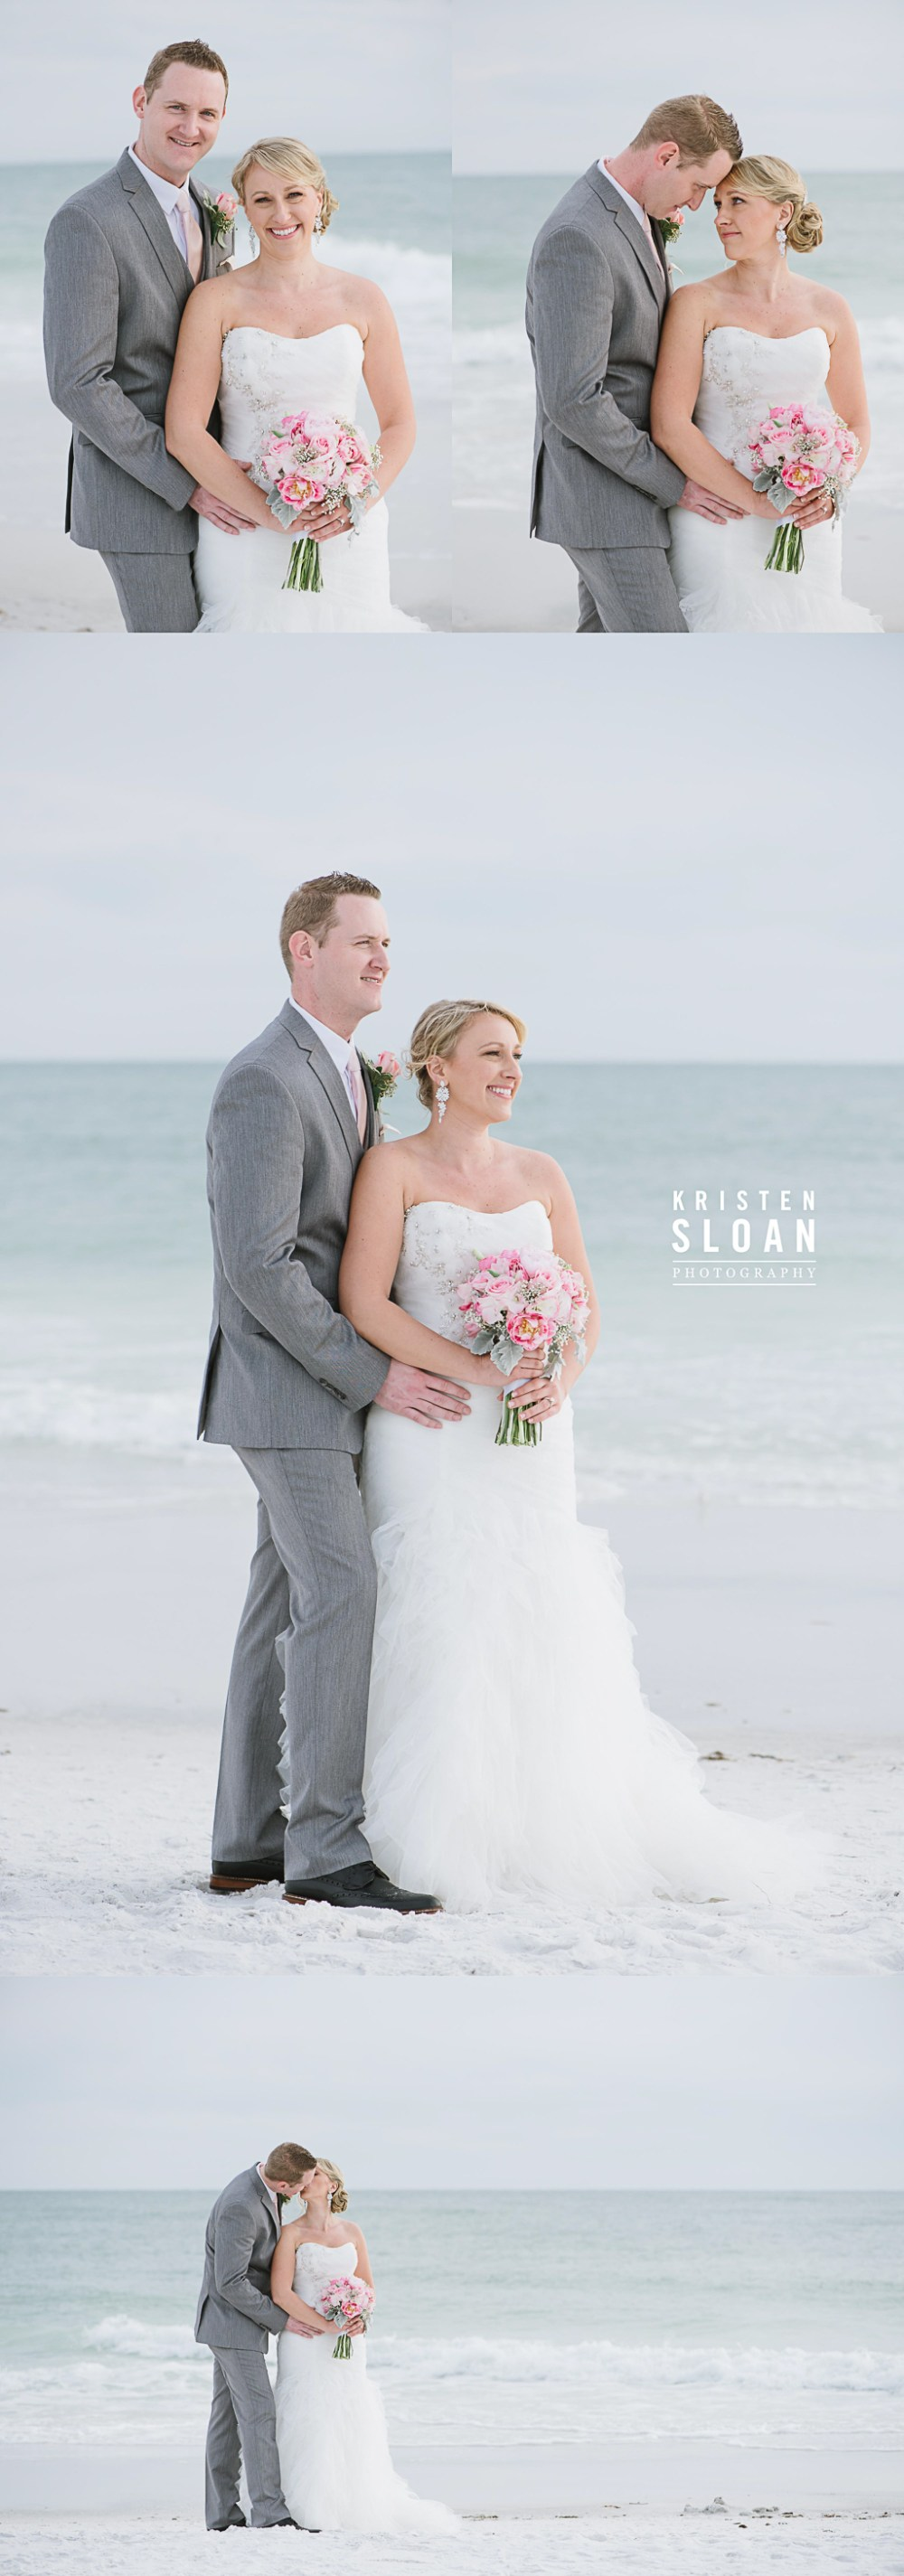 Anna Maria Island Florida Beach Wedding Photographer Kristen Sloan, Sandbar Restaurant Wedding Anna Maria Island, Beach Wedding Bride and Groom